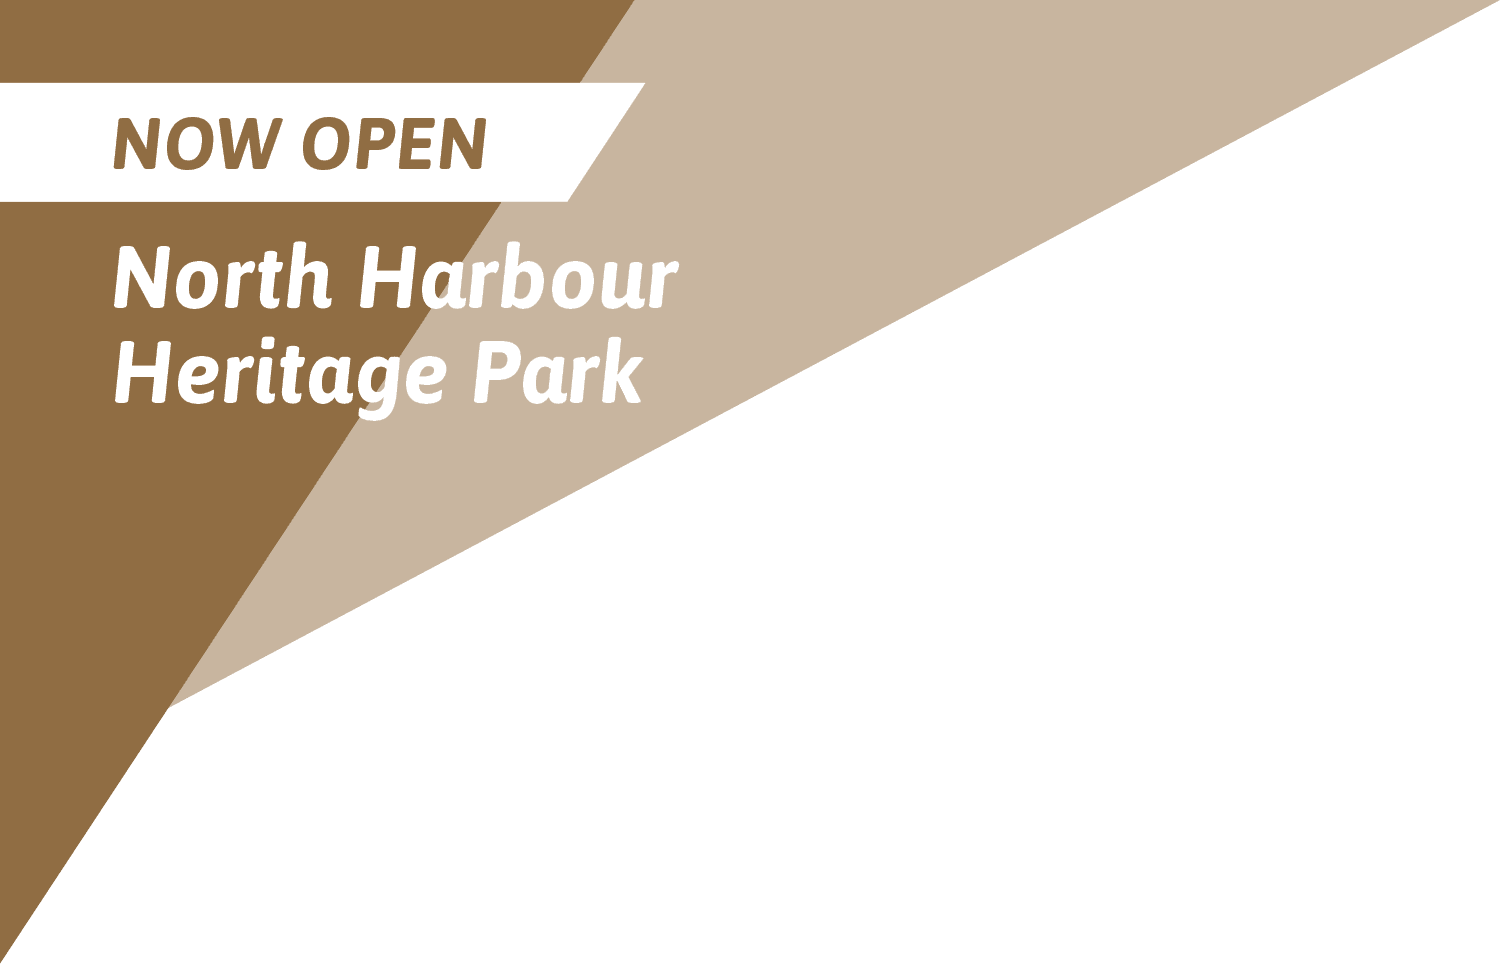 North Harbour Heritage Park - Now Open